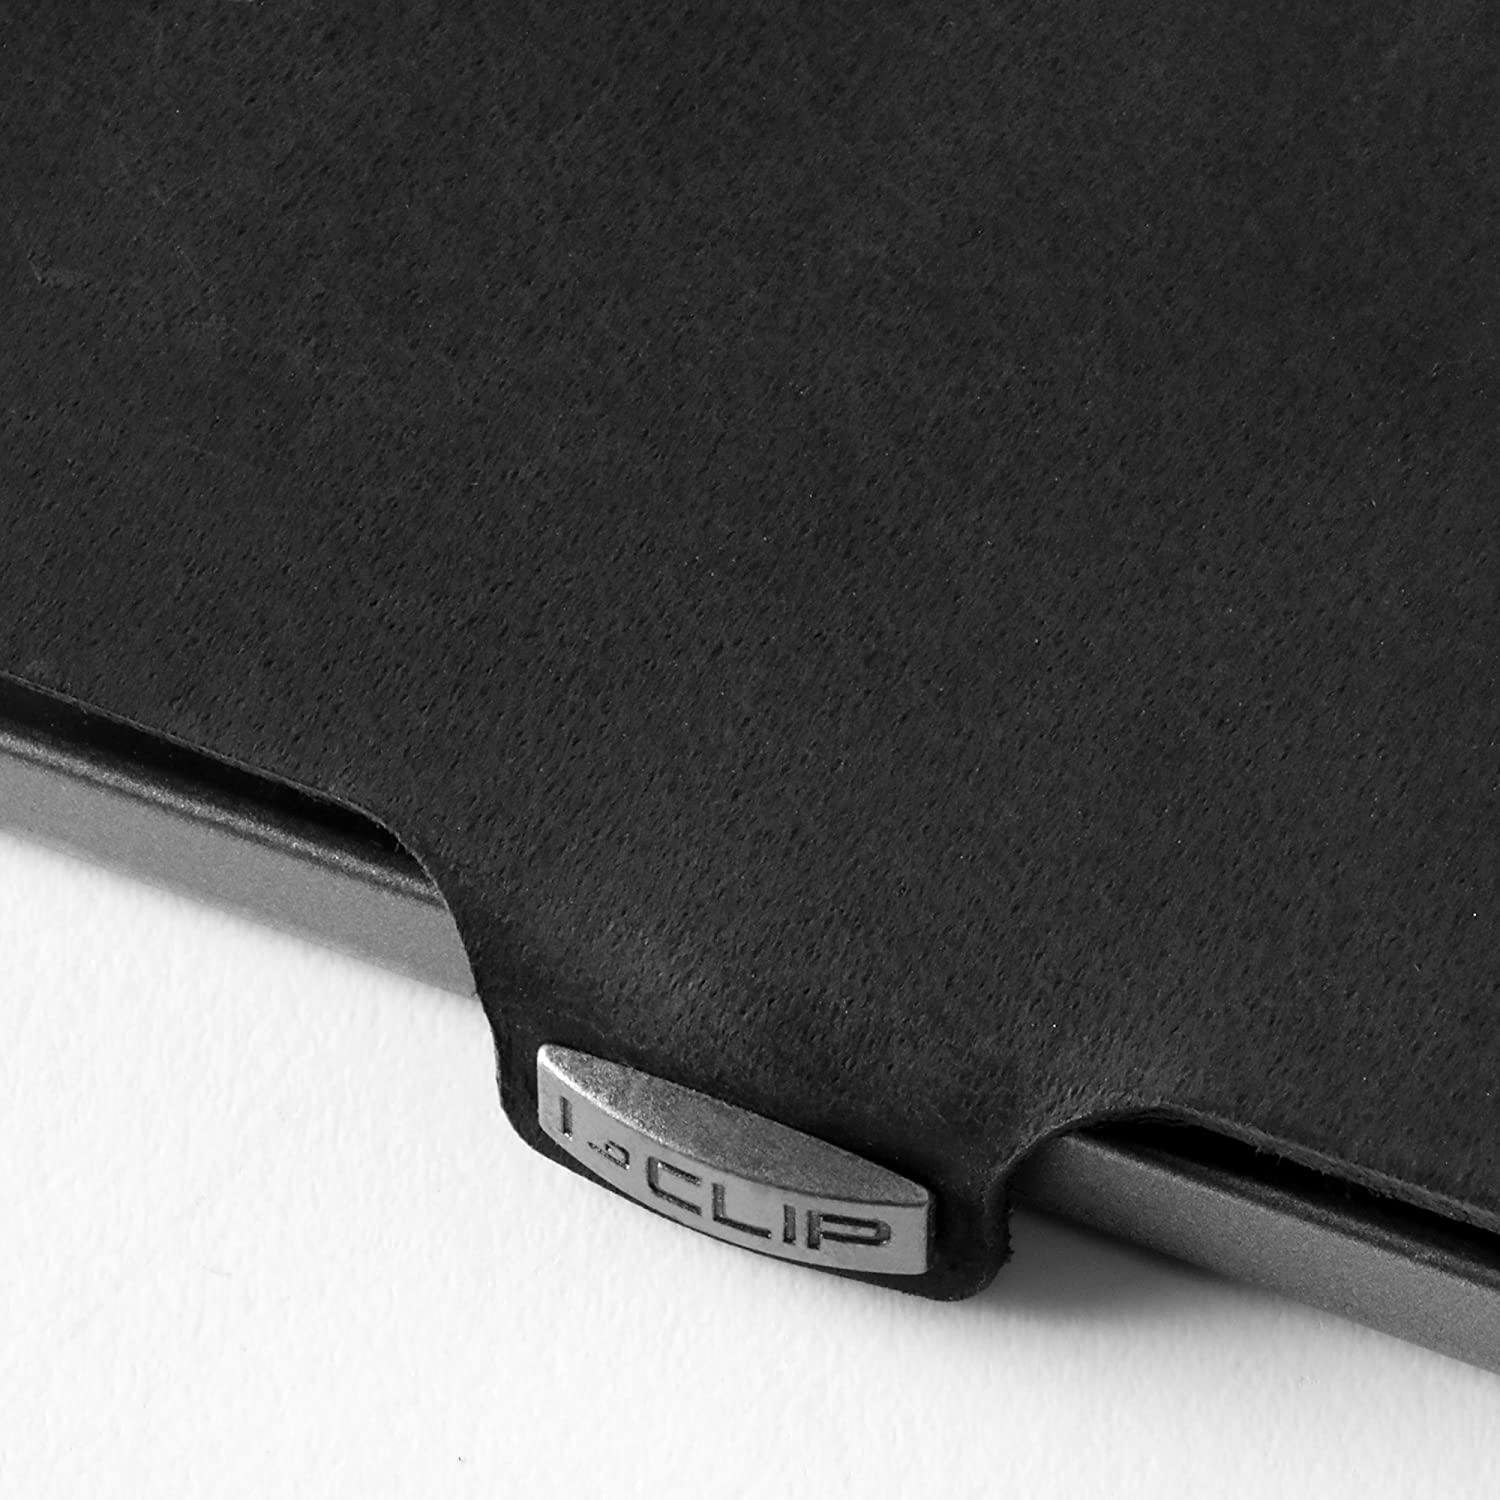 I-CLIP Soft Touch Slim Wallet black available in 9 colors